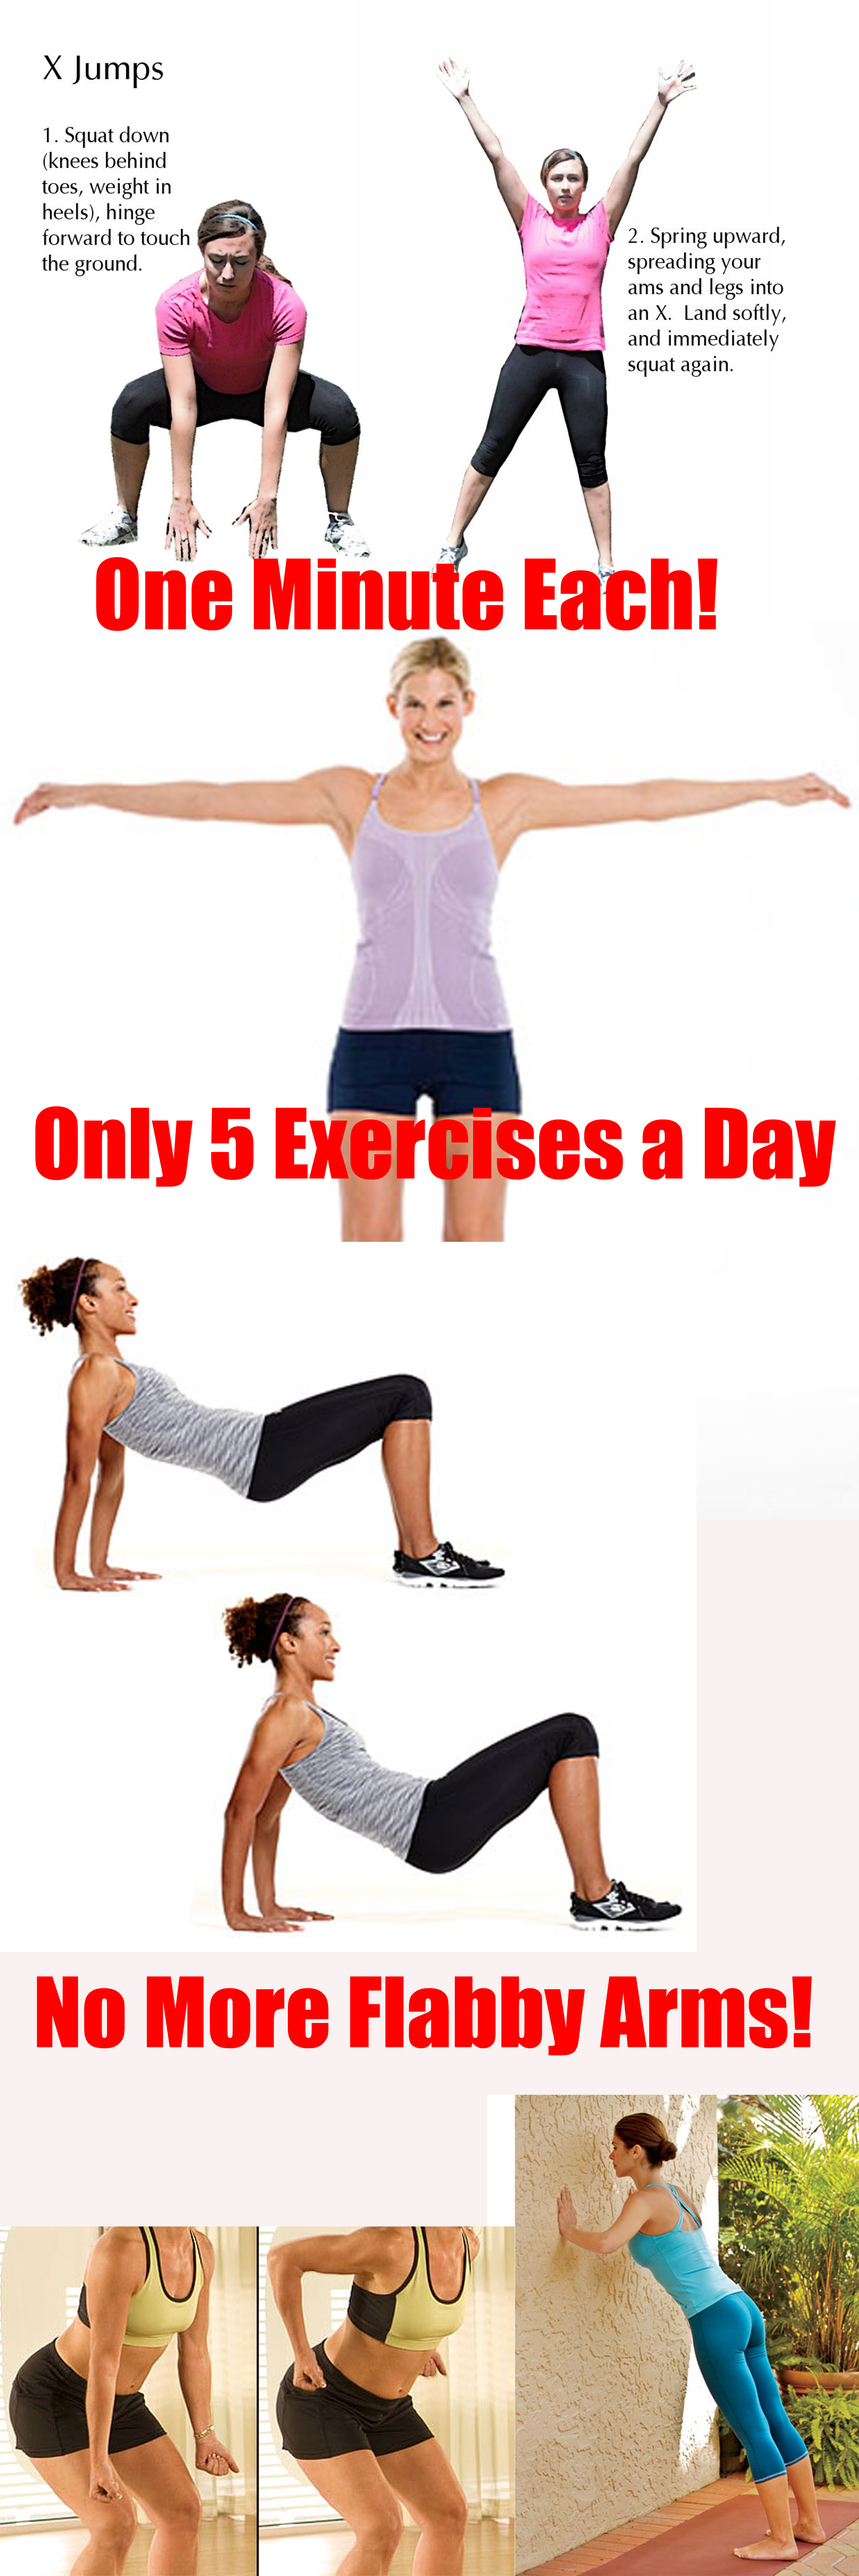 10 Best Home Exercises To Get Rid Of Flabby Arms | Tone up ...